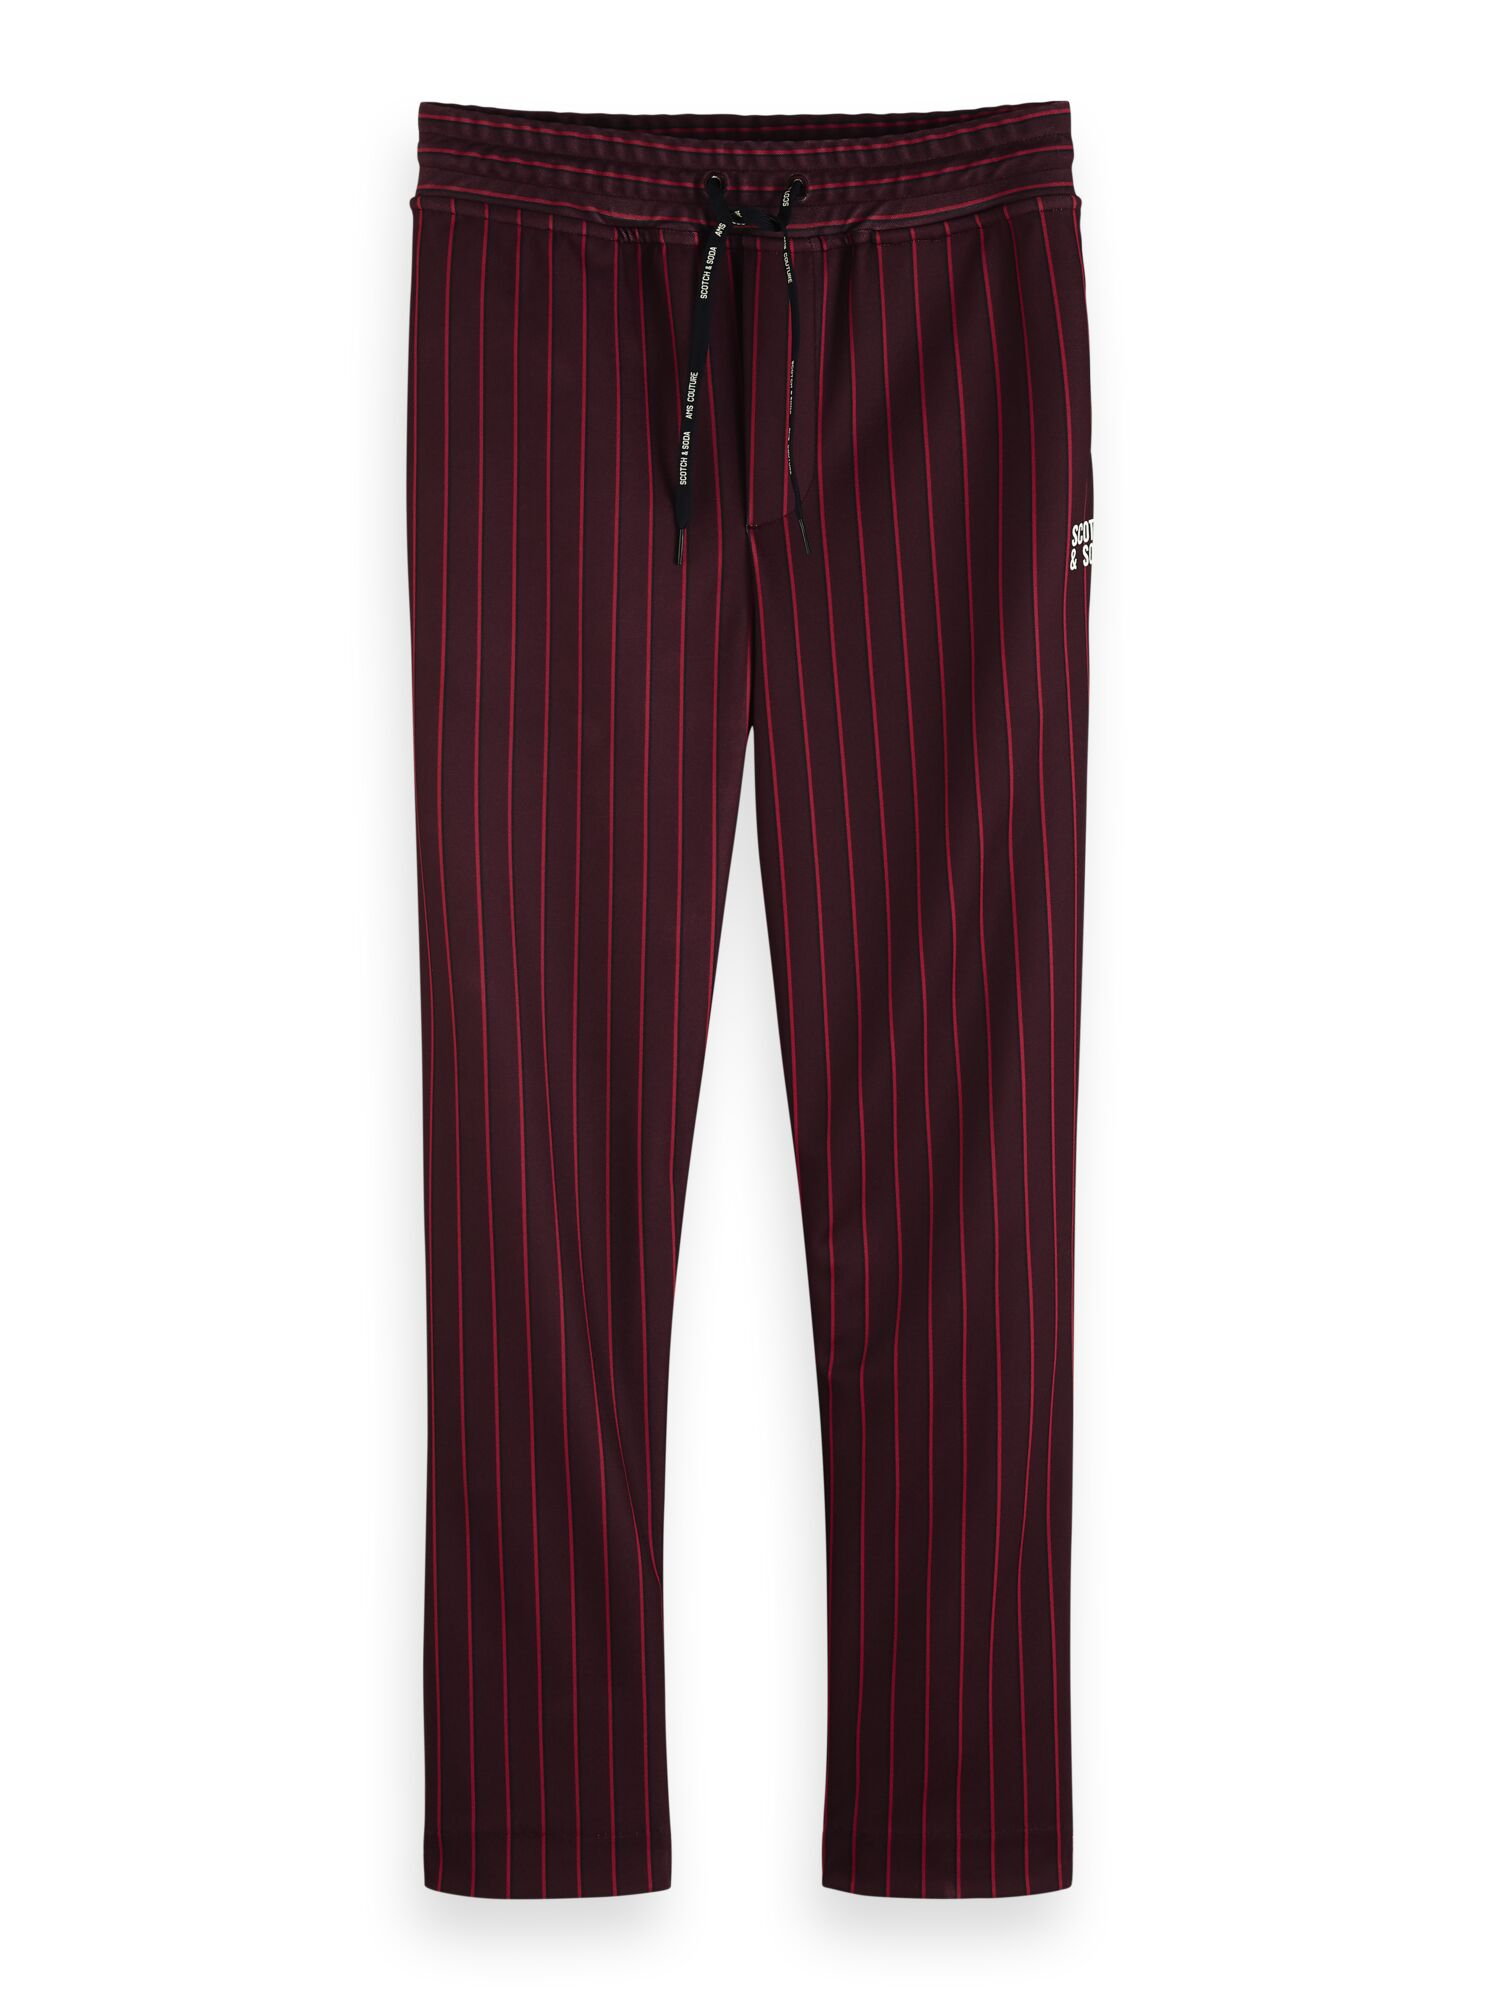 Scotch & Soda   Chic sweat pants in pique structured quality